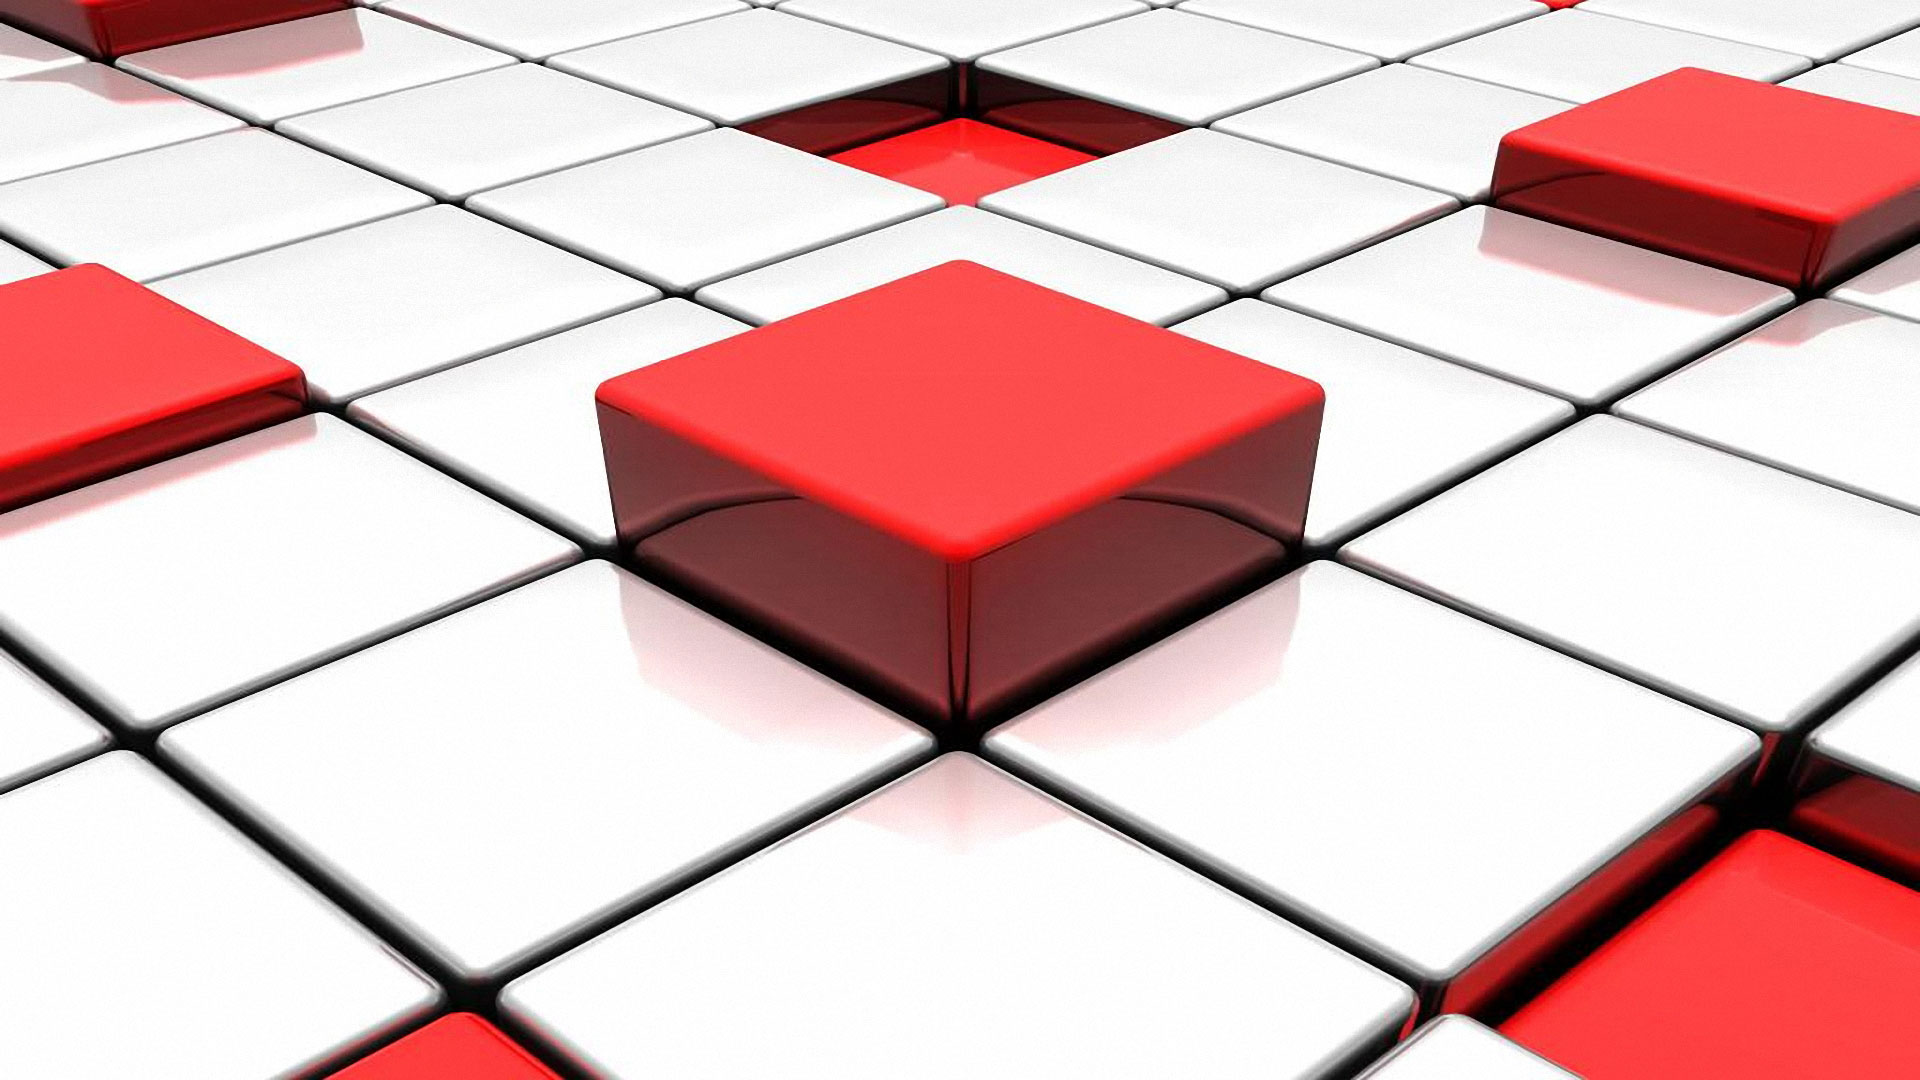 Red Abstract D And White Tiles Free 231631 Wallpaper wallpaper